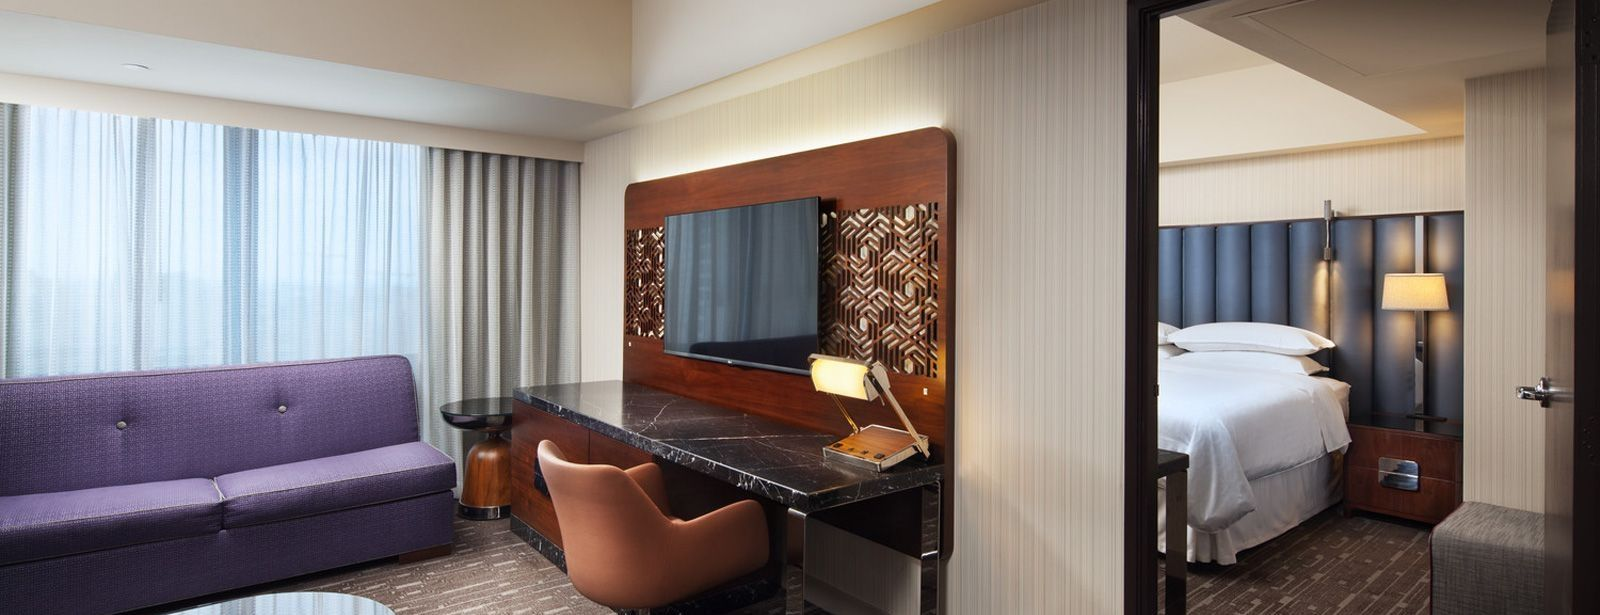 Sheraton Grand Los Angeles - Junior Suite